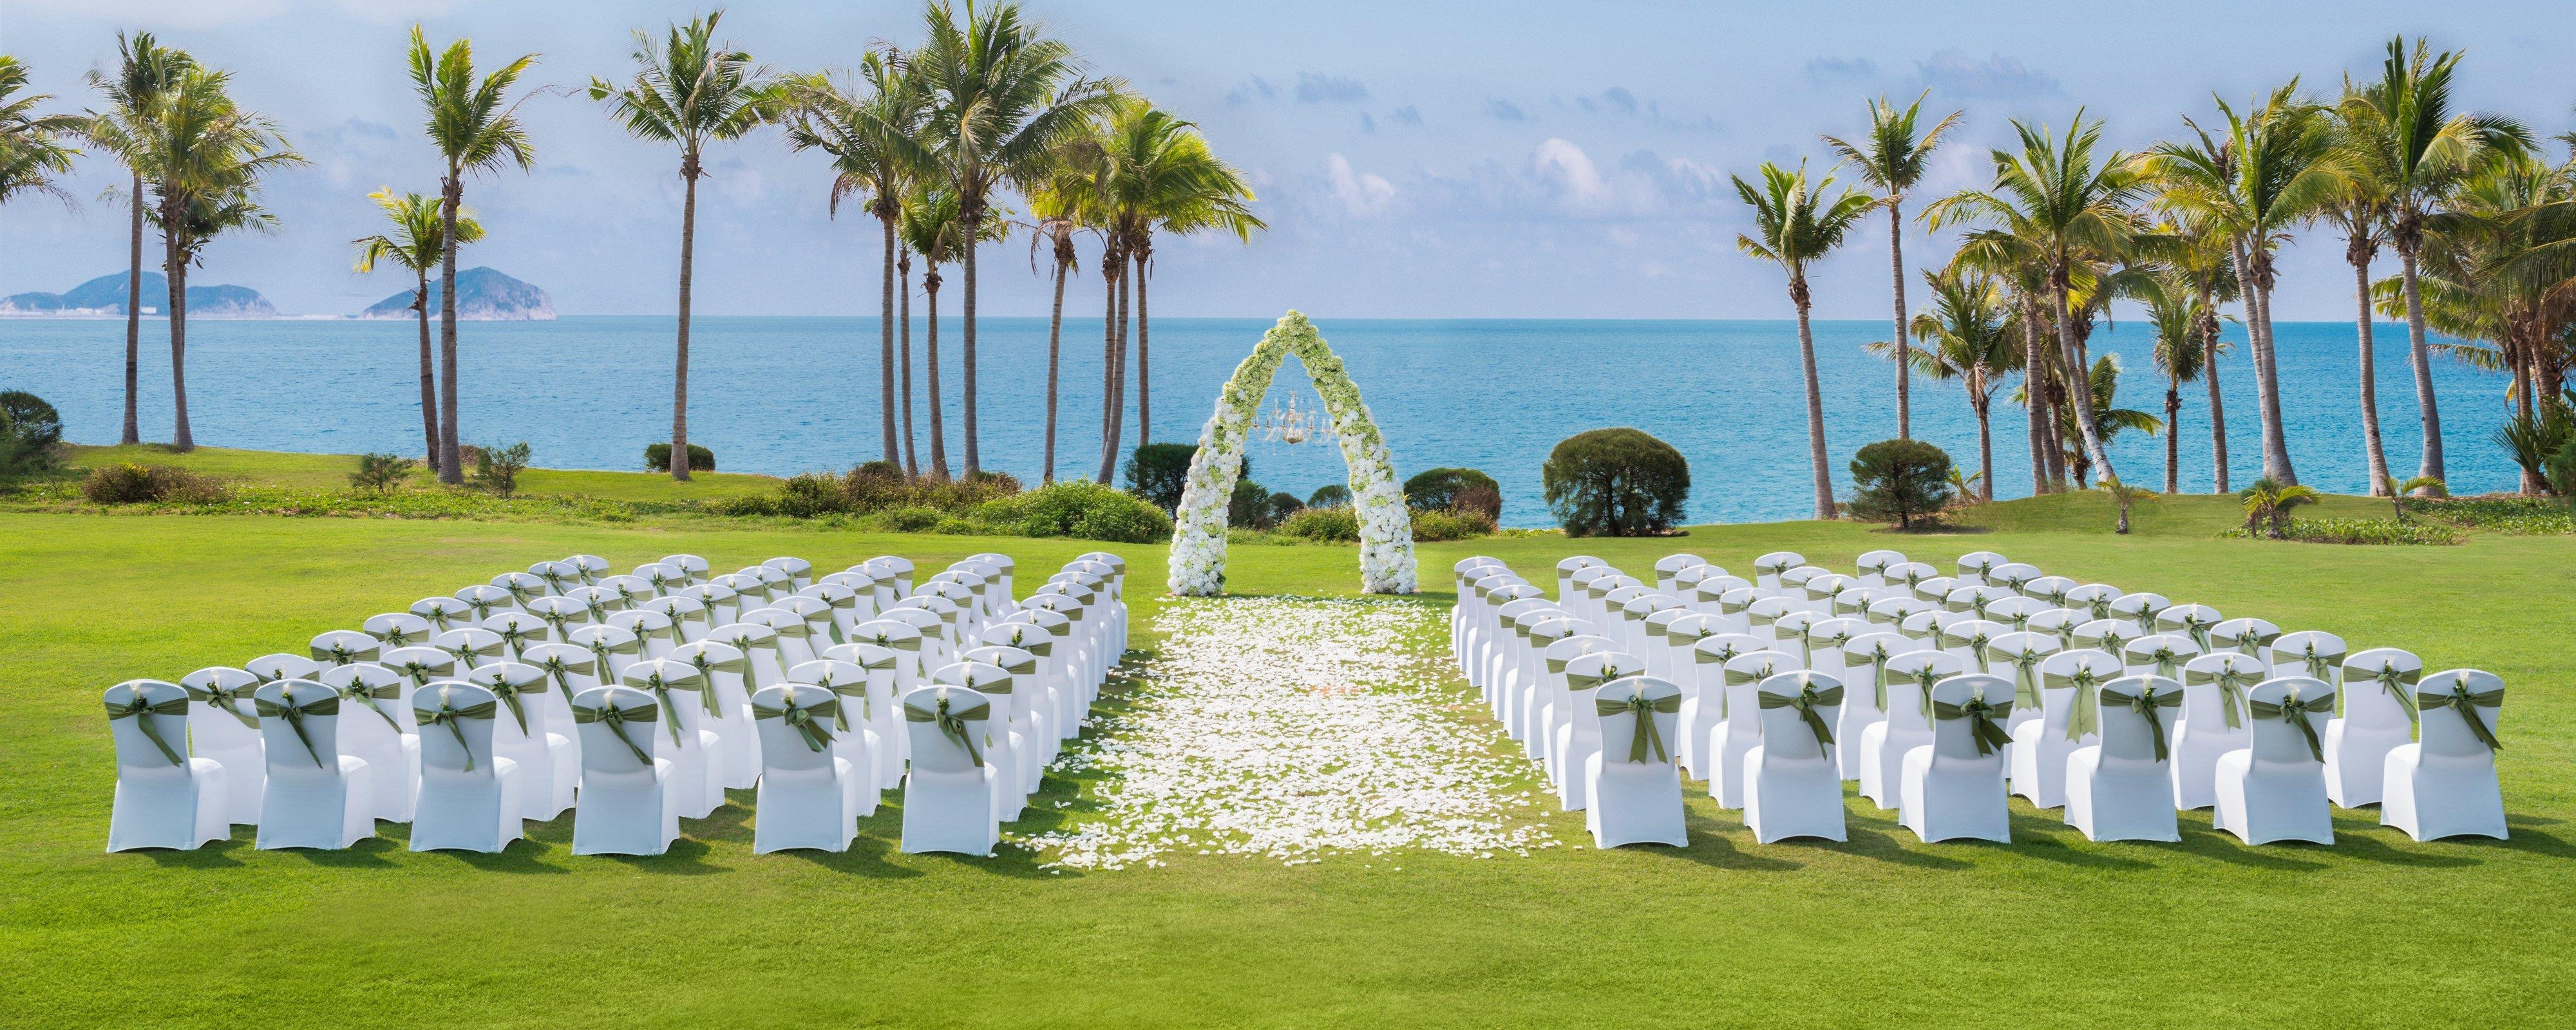 Wedding at Beach Lawn